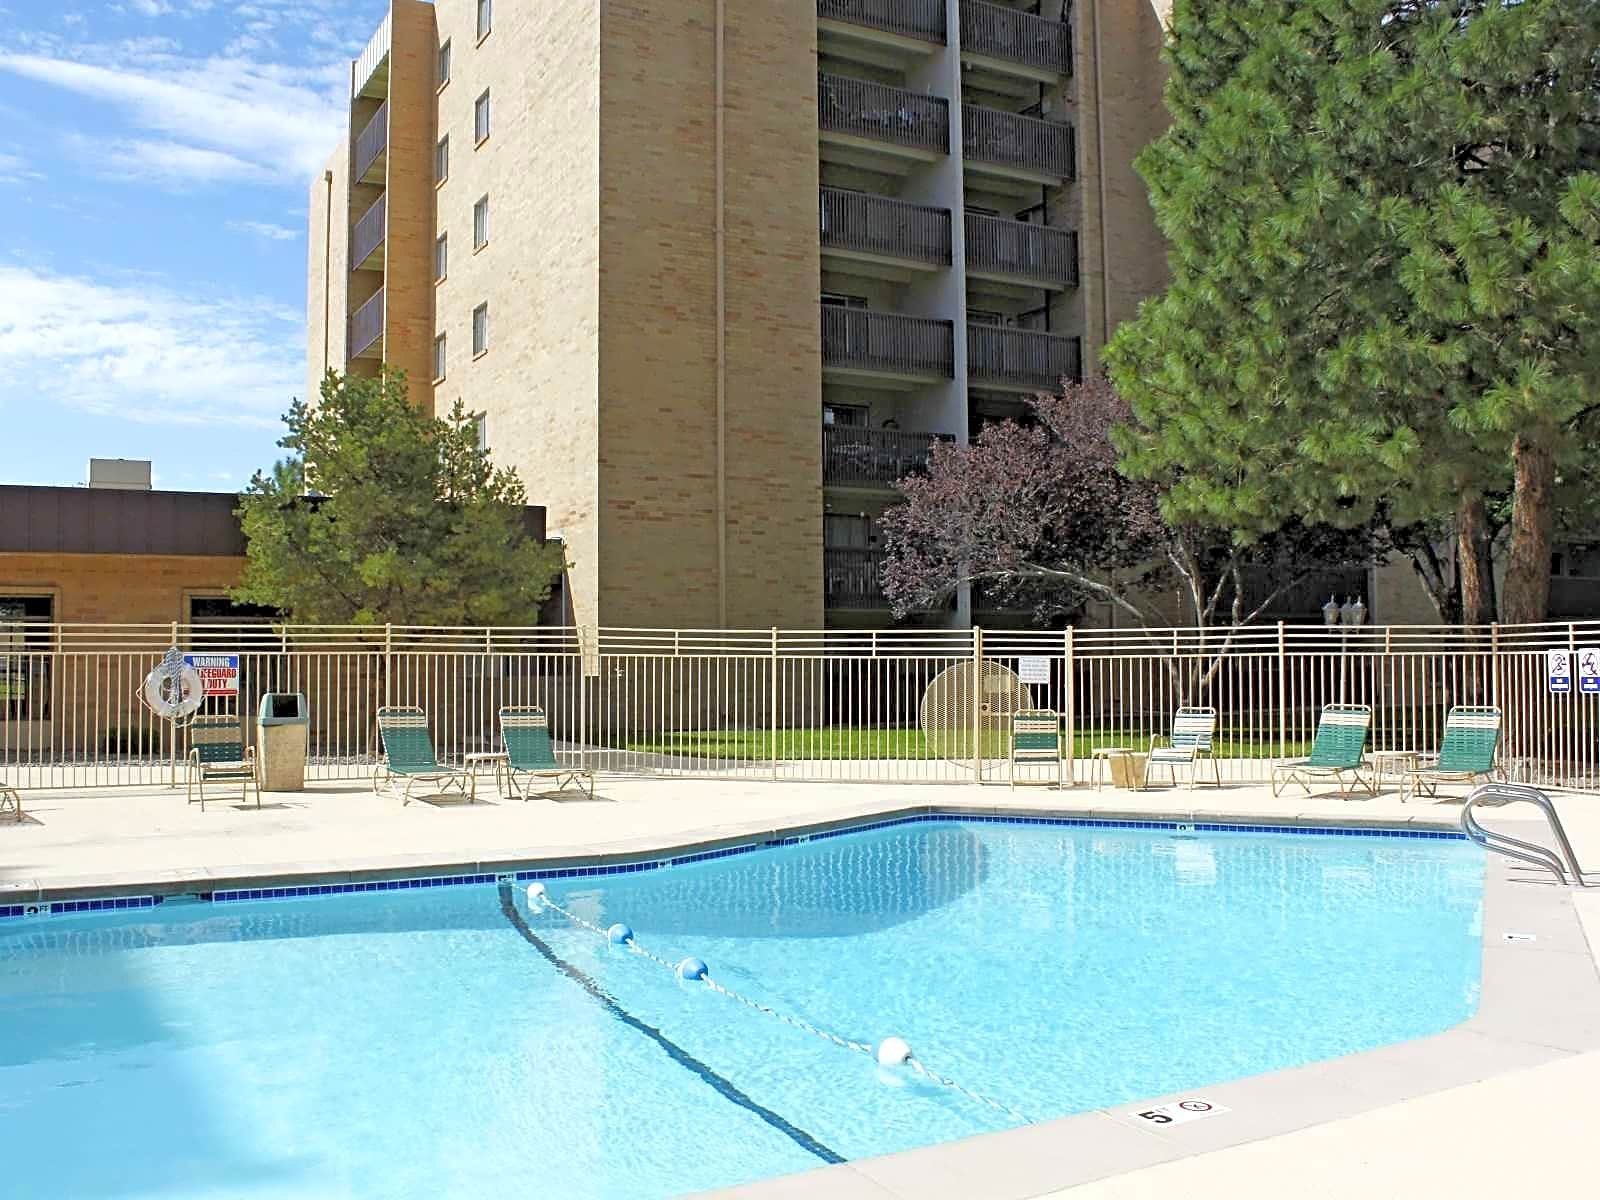 Apartments Near New Mexico Los Altos Towers for University of New Mexico Students in Albuquerque, NM